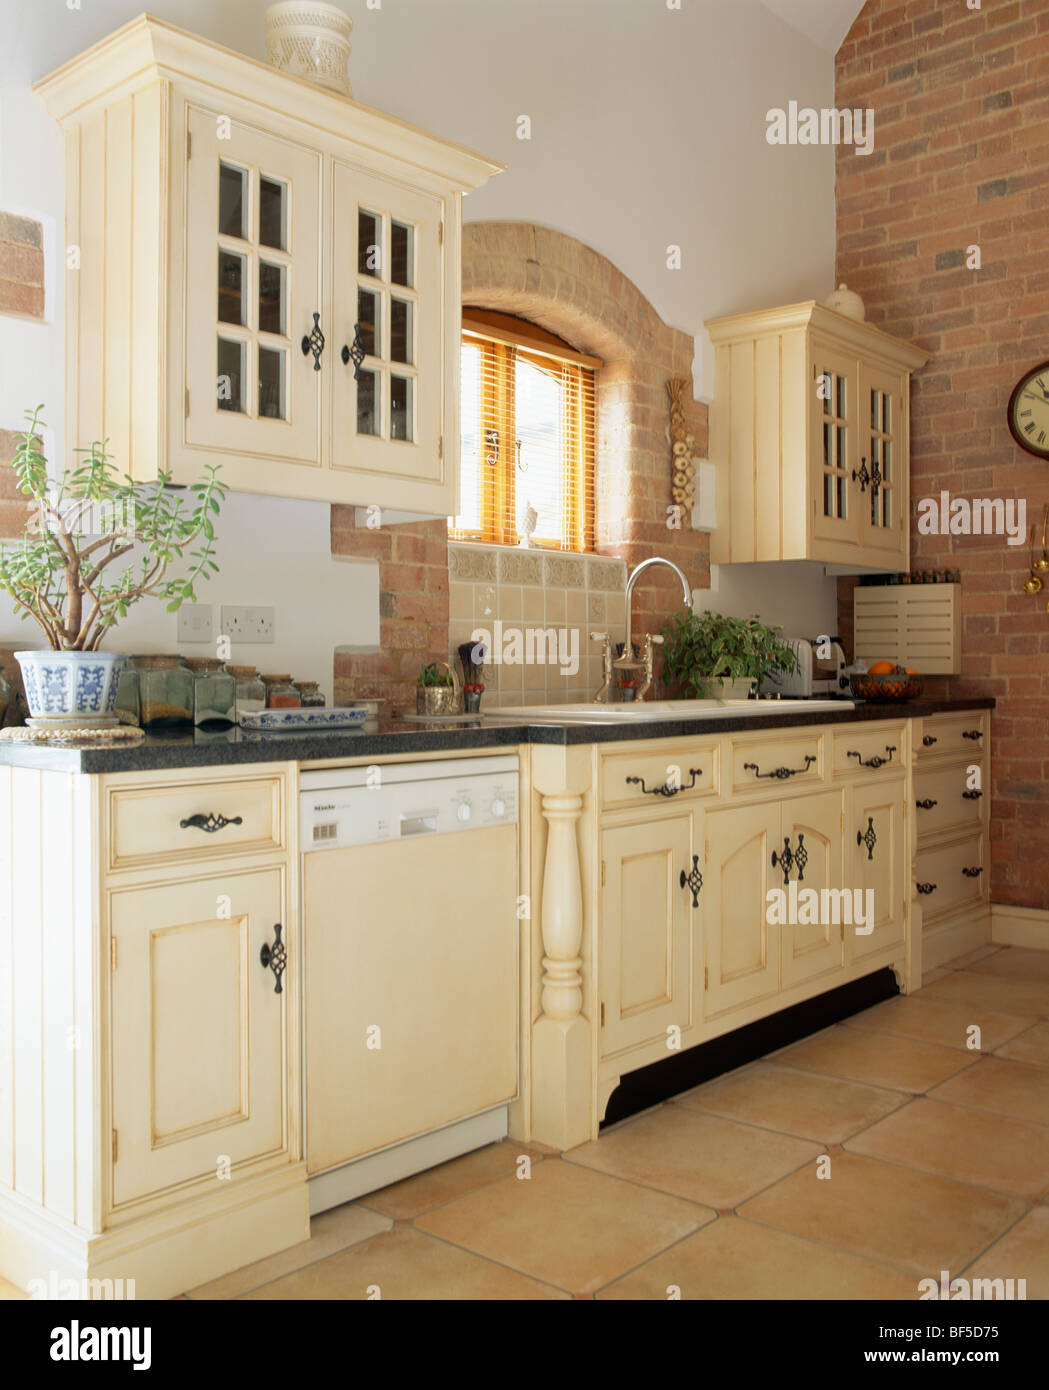 Stock Photo Traditional Cream Country Kitchen With Dishwasher In Fitted Unit